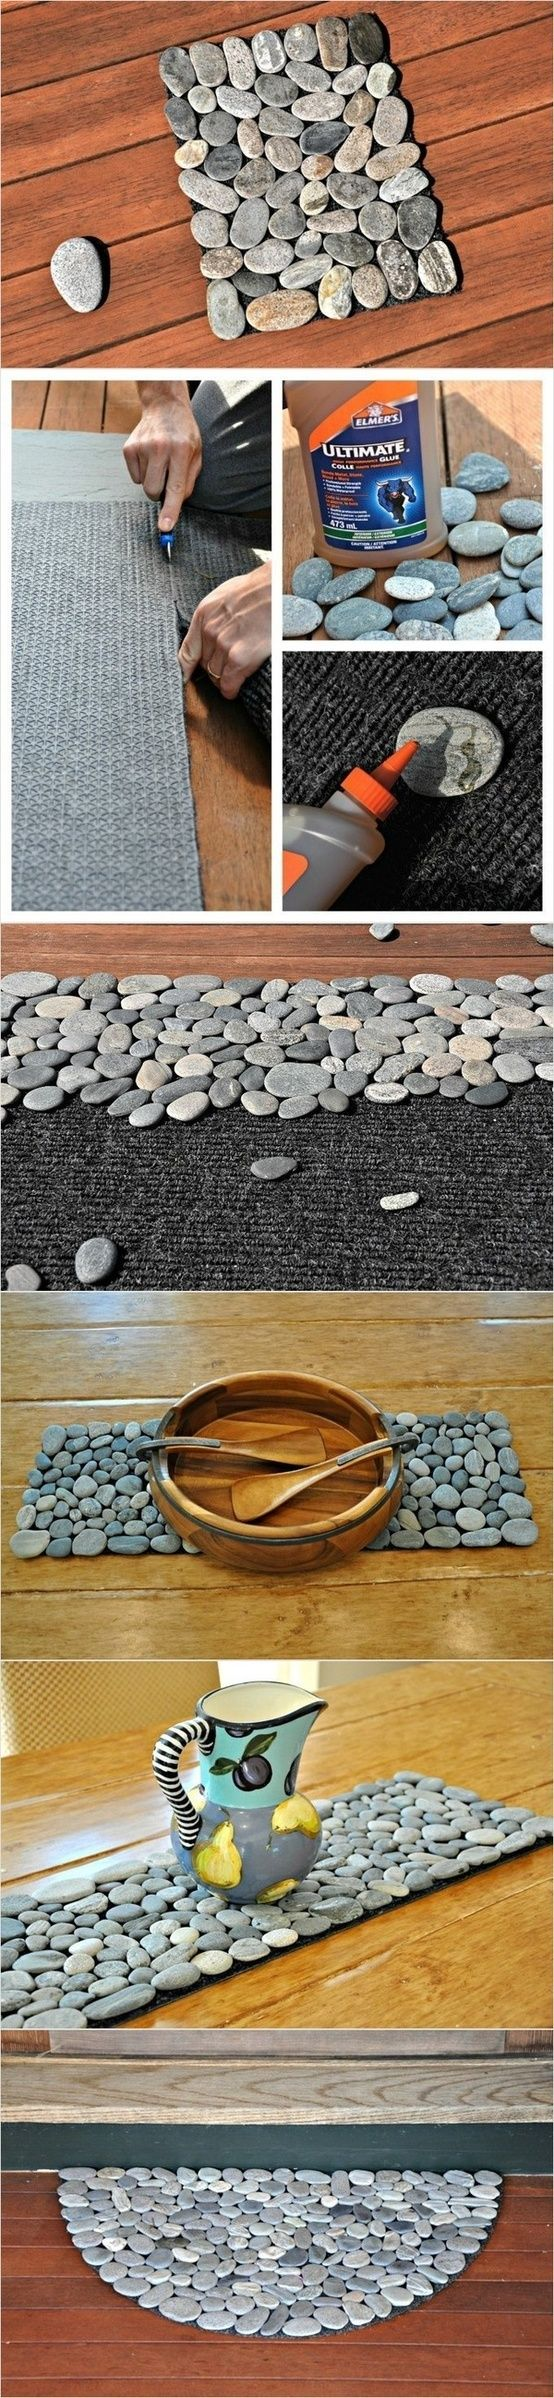 DIY pebble mat- I like this for a bathroom or kitchen decoration